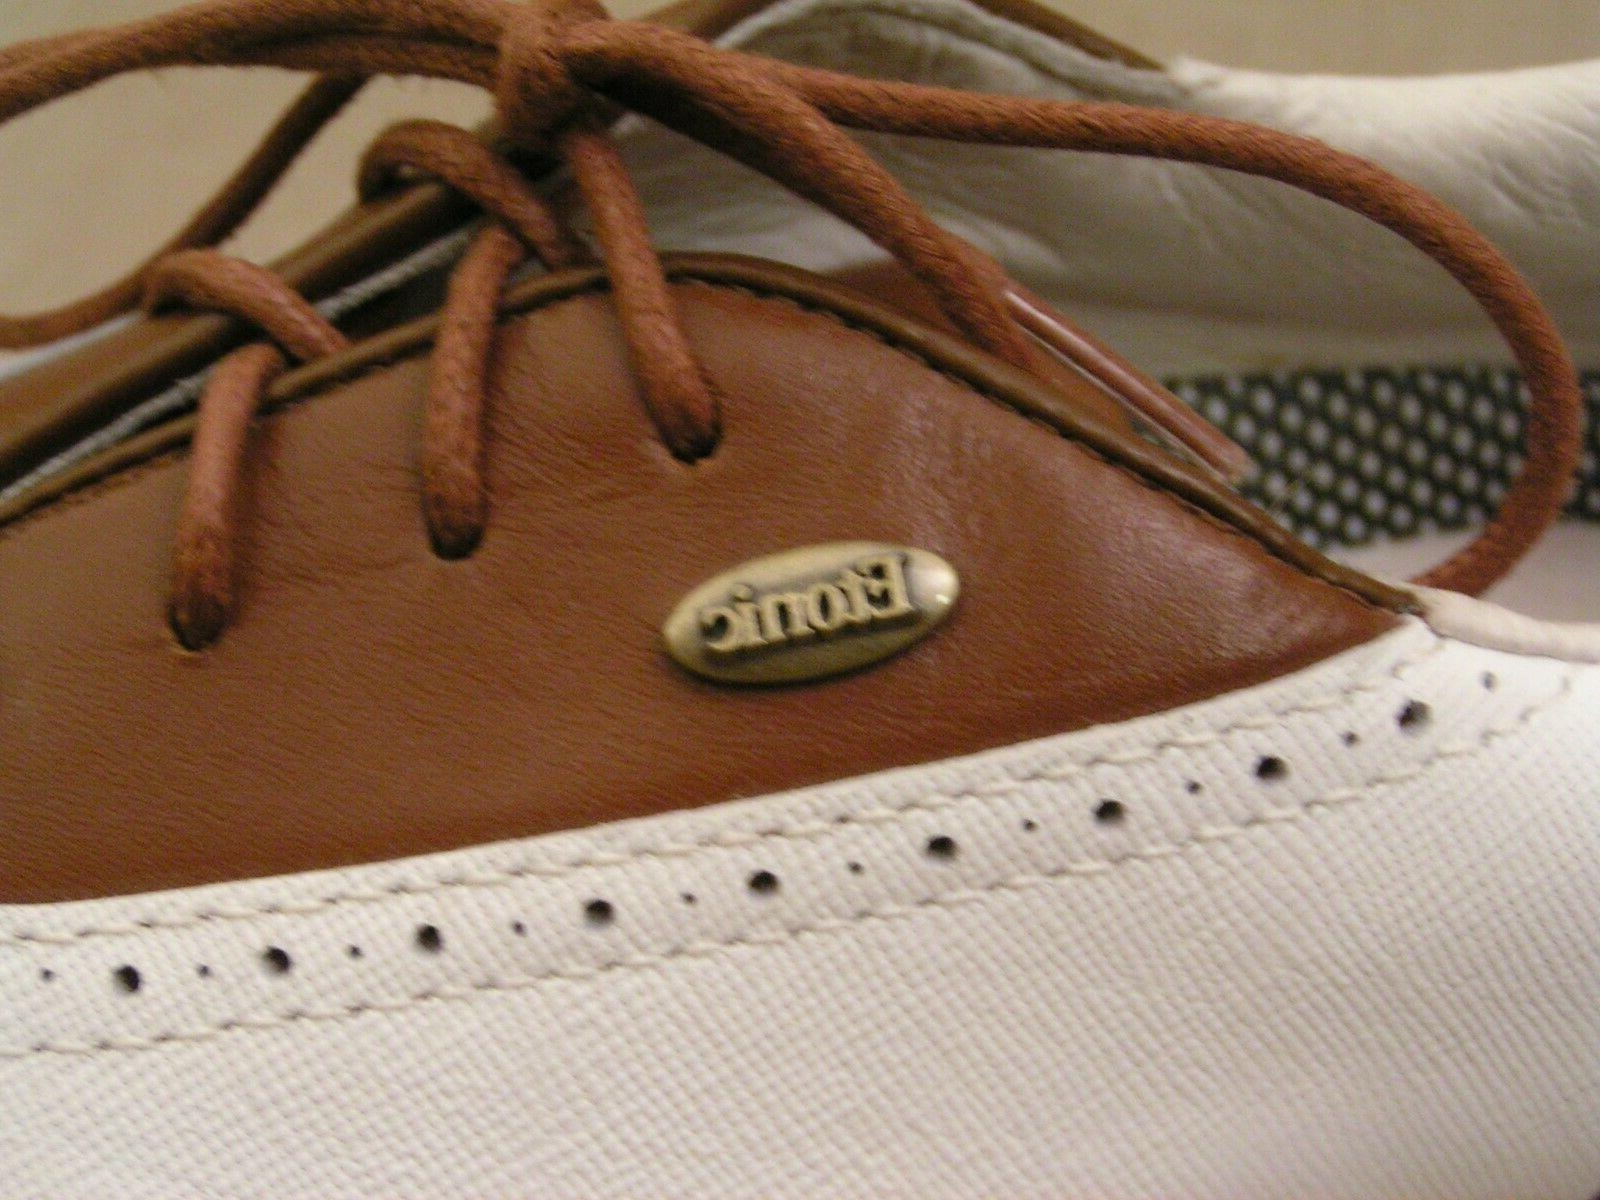 Etonic Difference 2000 White & Brown Soft Golf Shoes SZ. 8